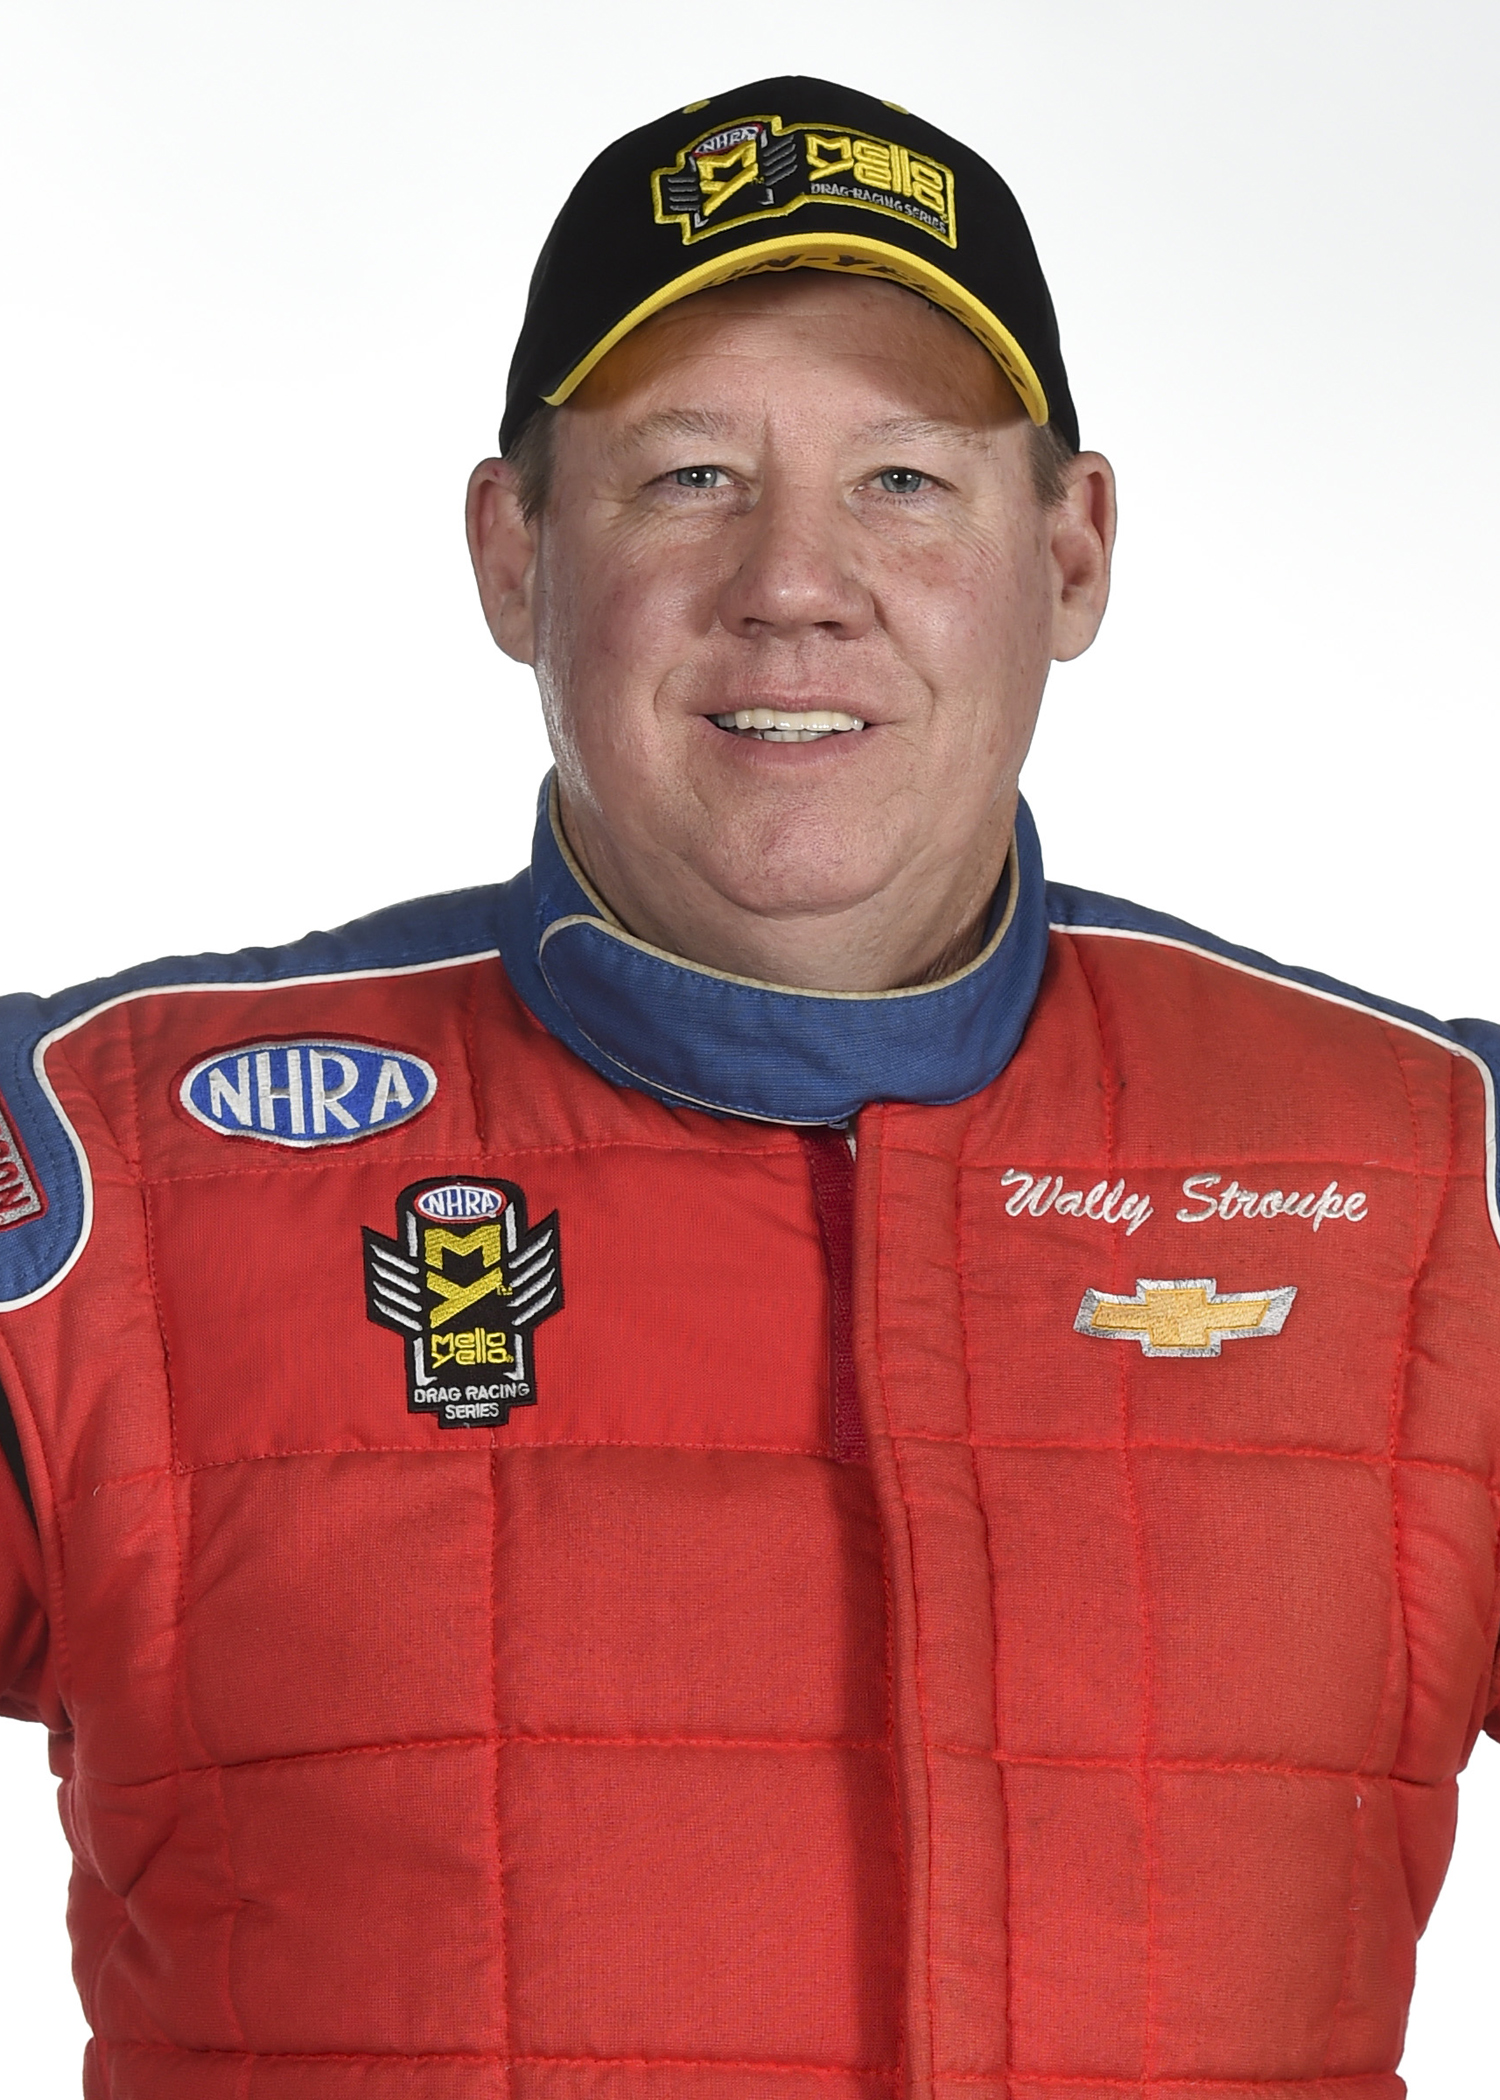 NHRA Rookie - Pro Stock - Wally Stroupe